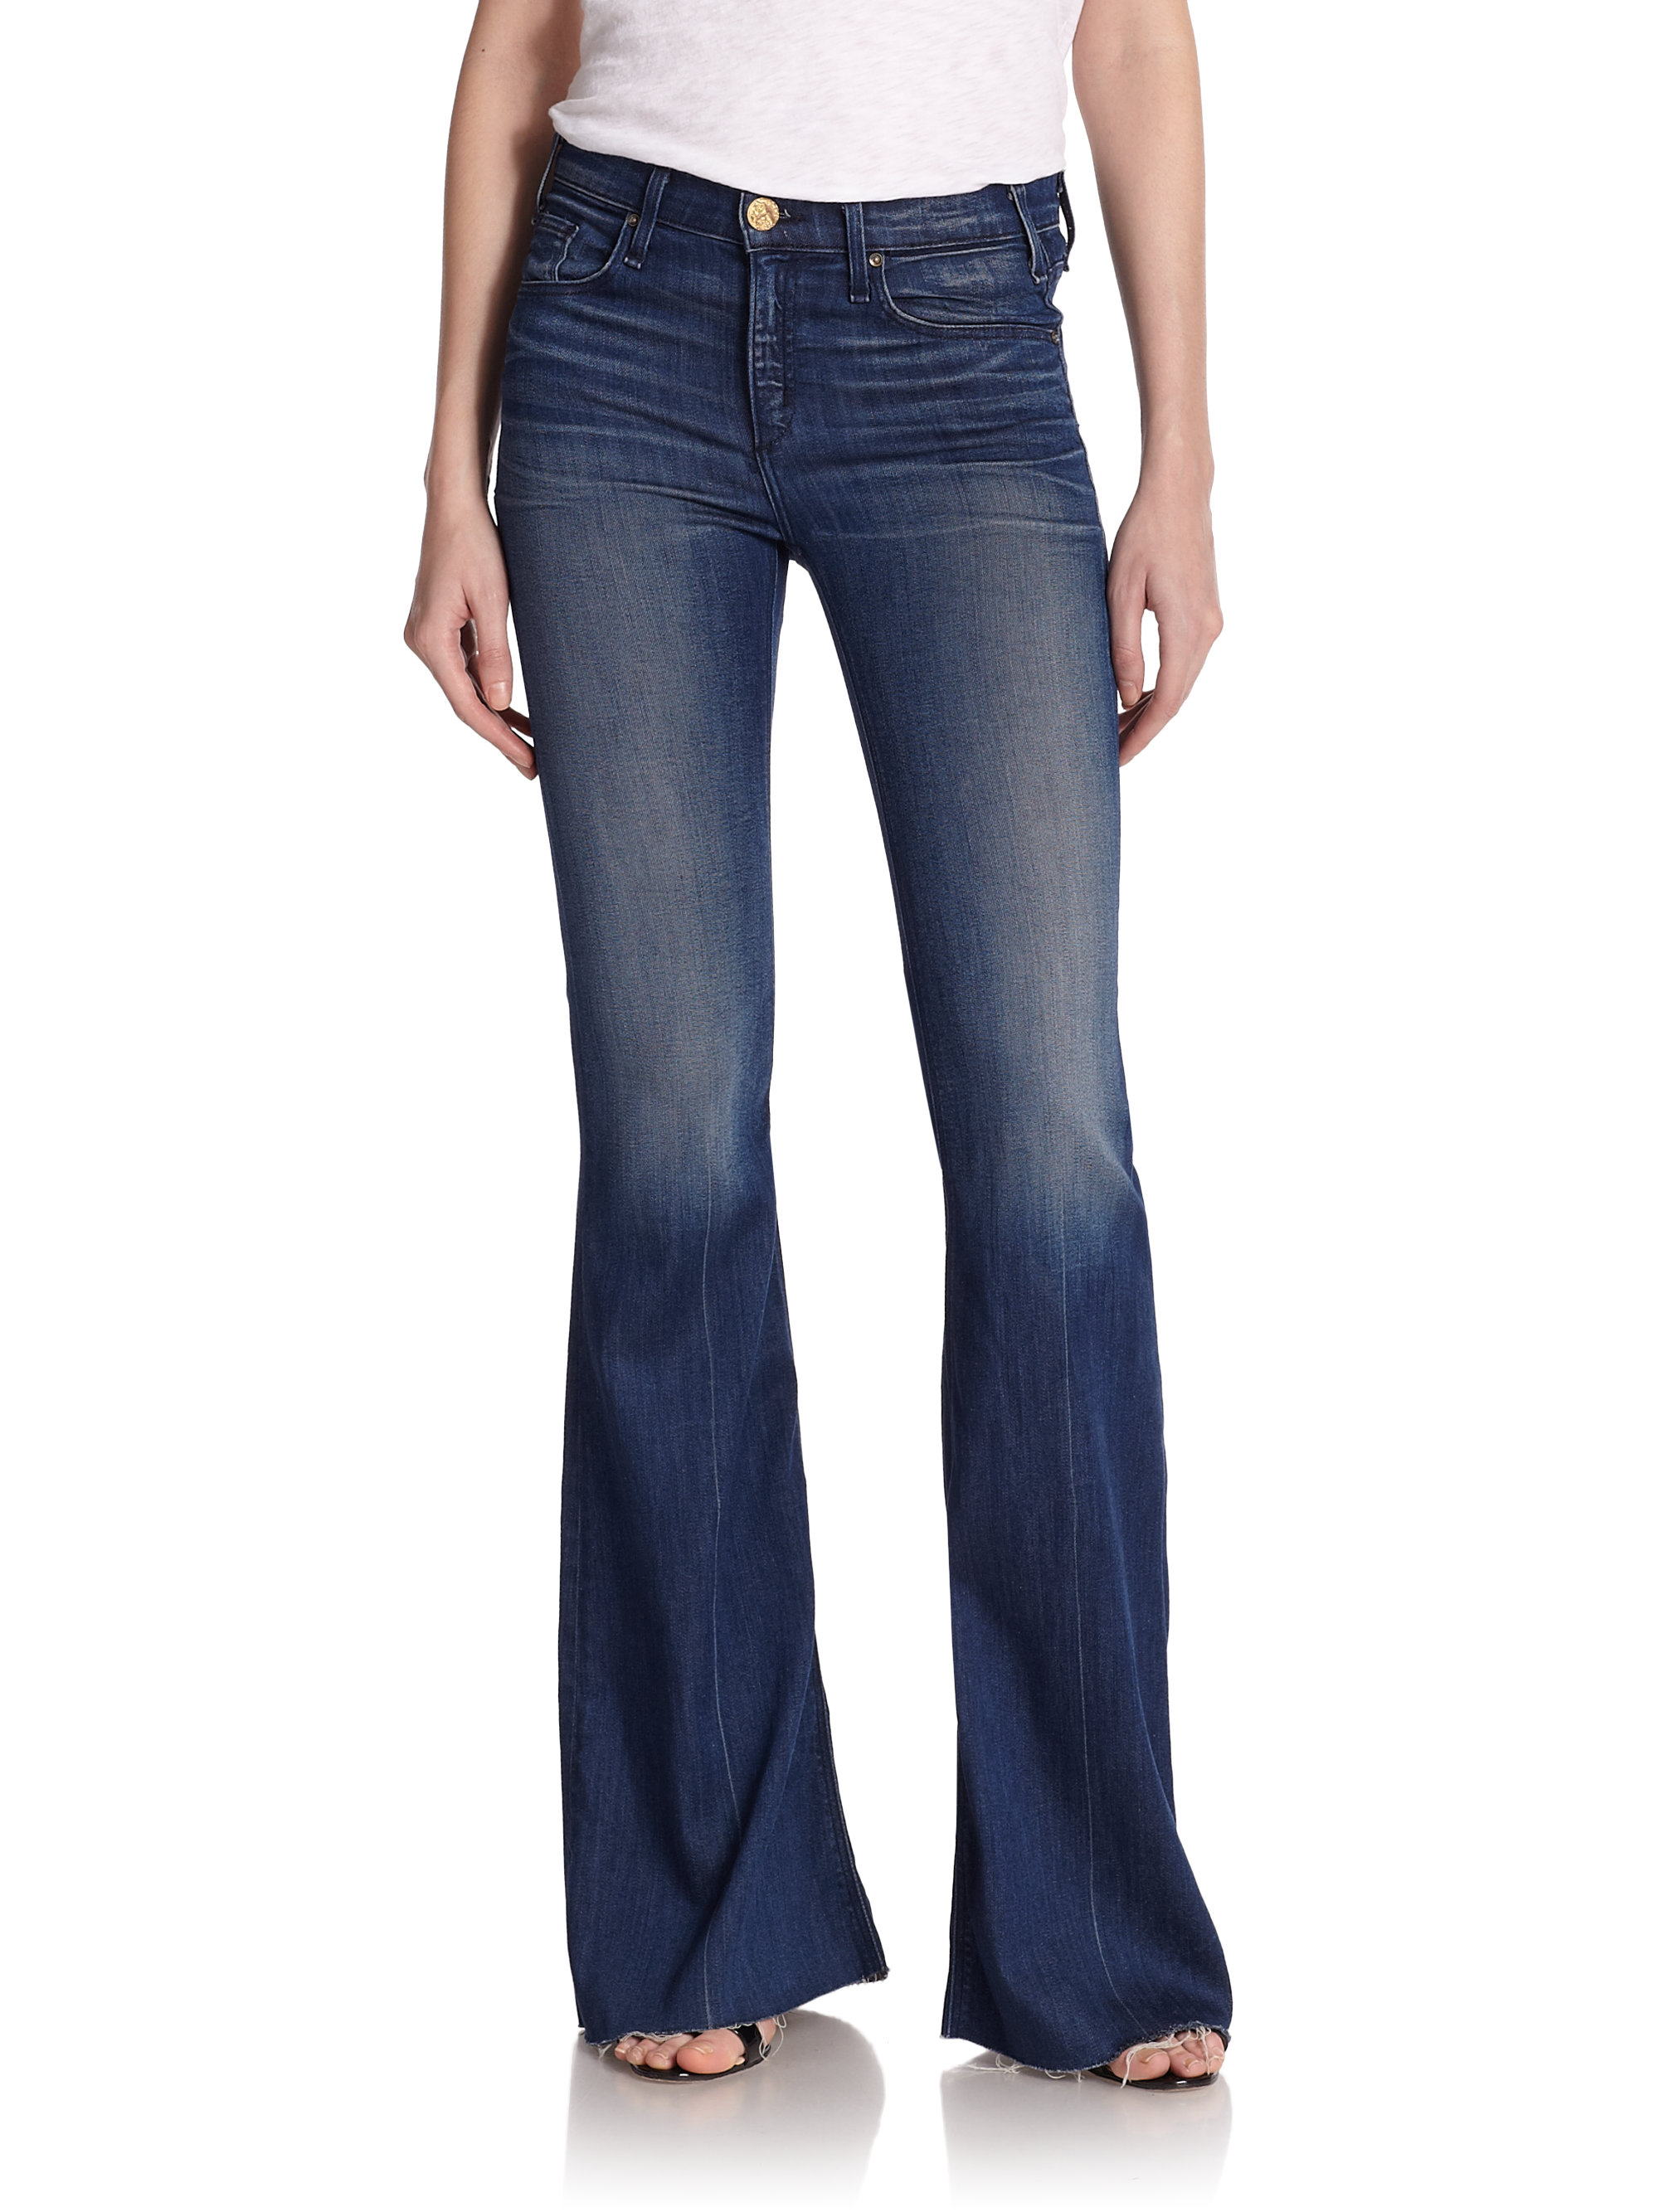 Mcguire Majorelle Distressed High-waist Flared Jeans in Blue | Lyst